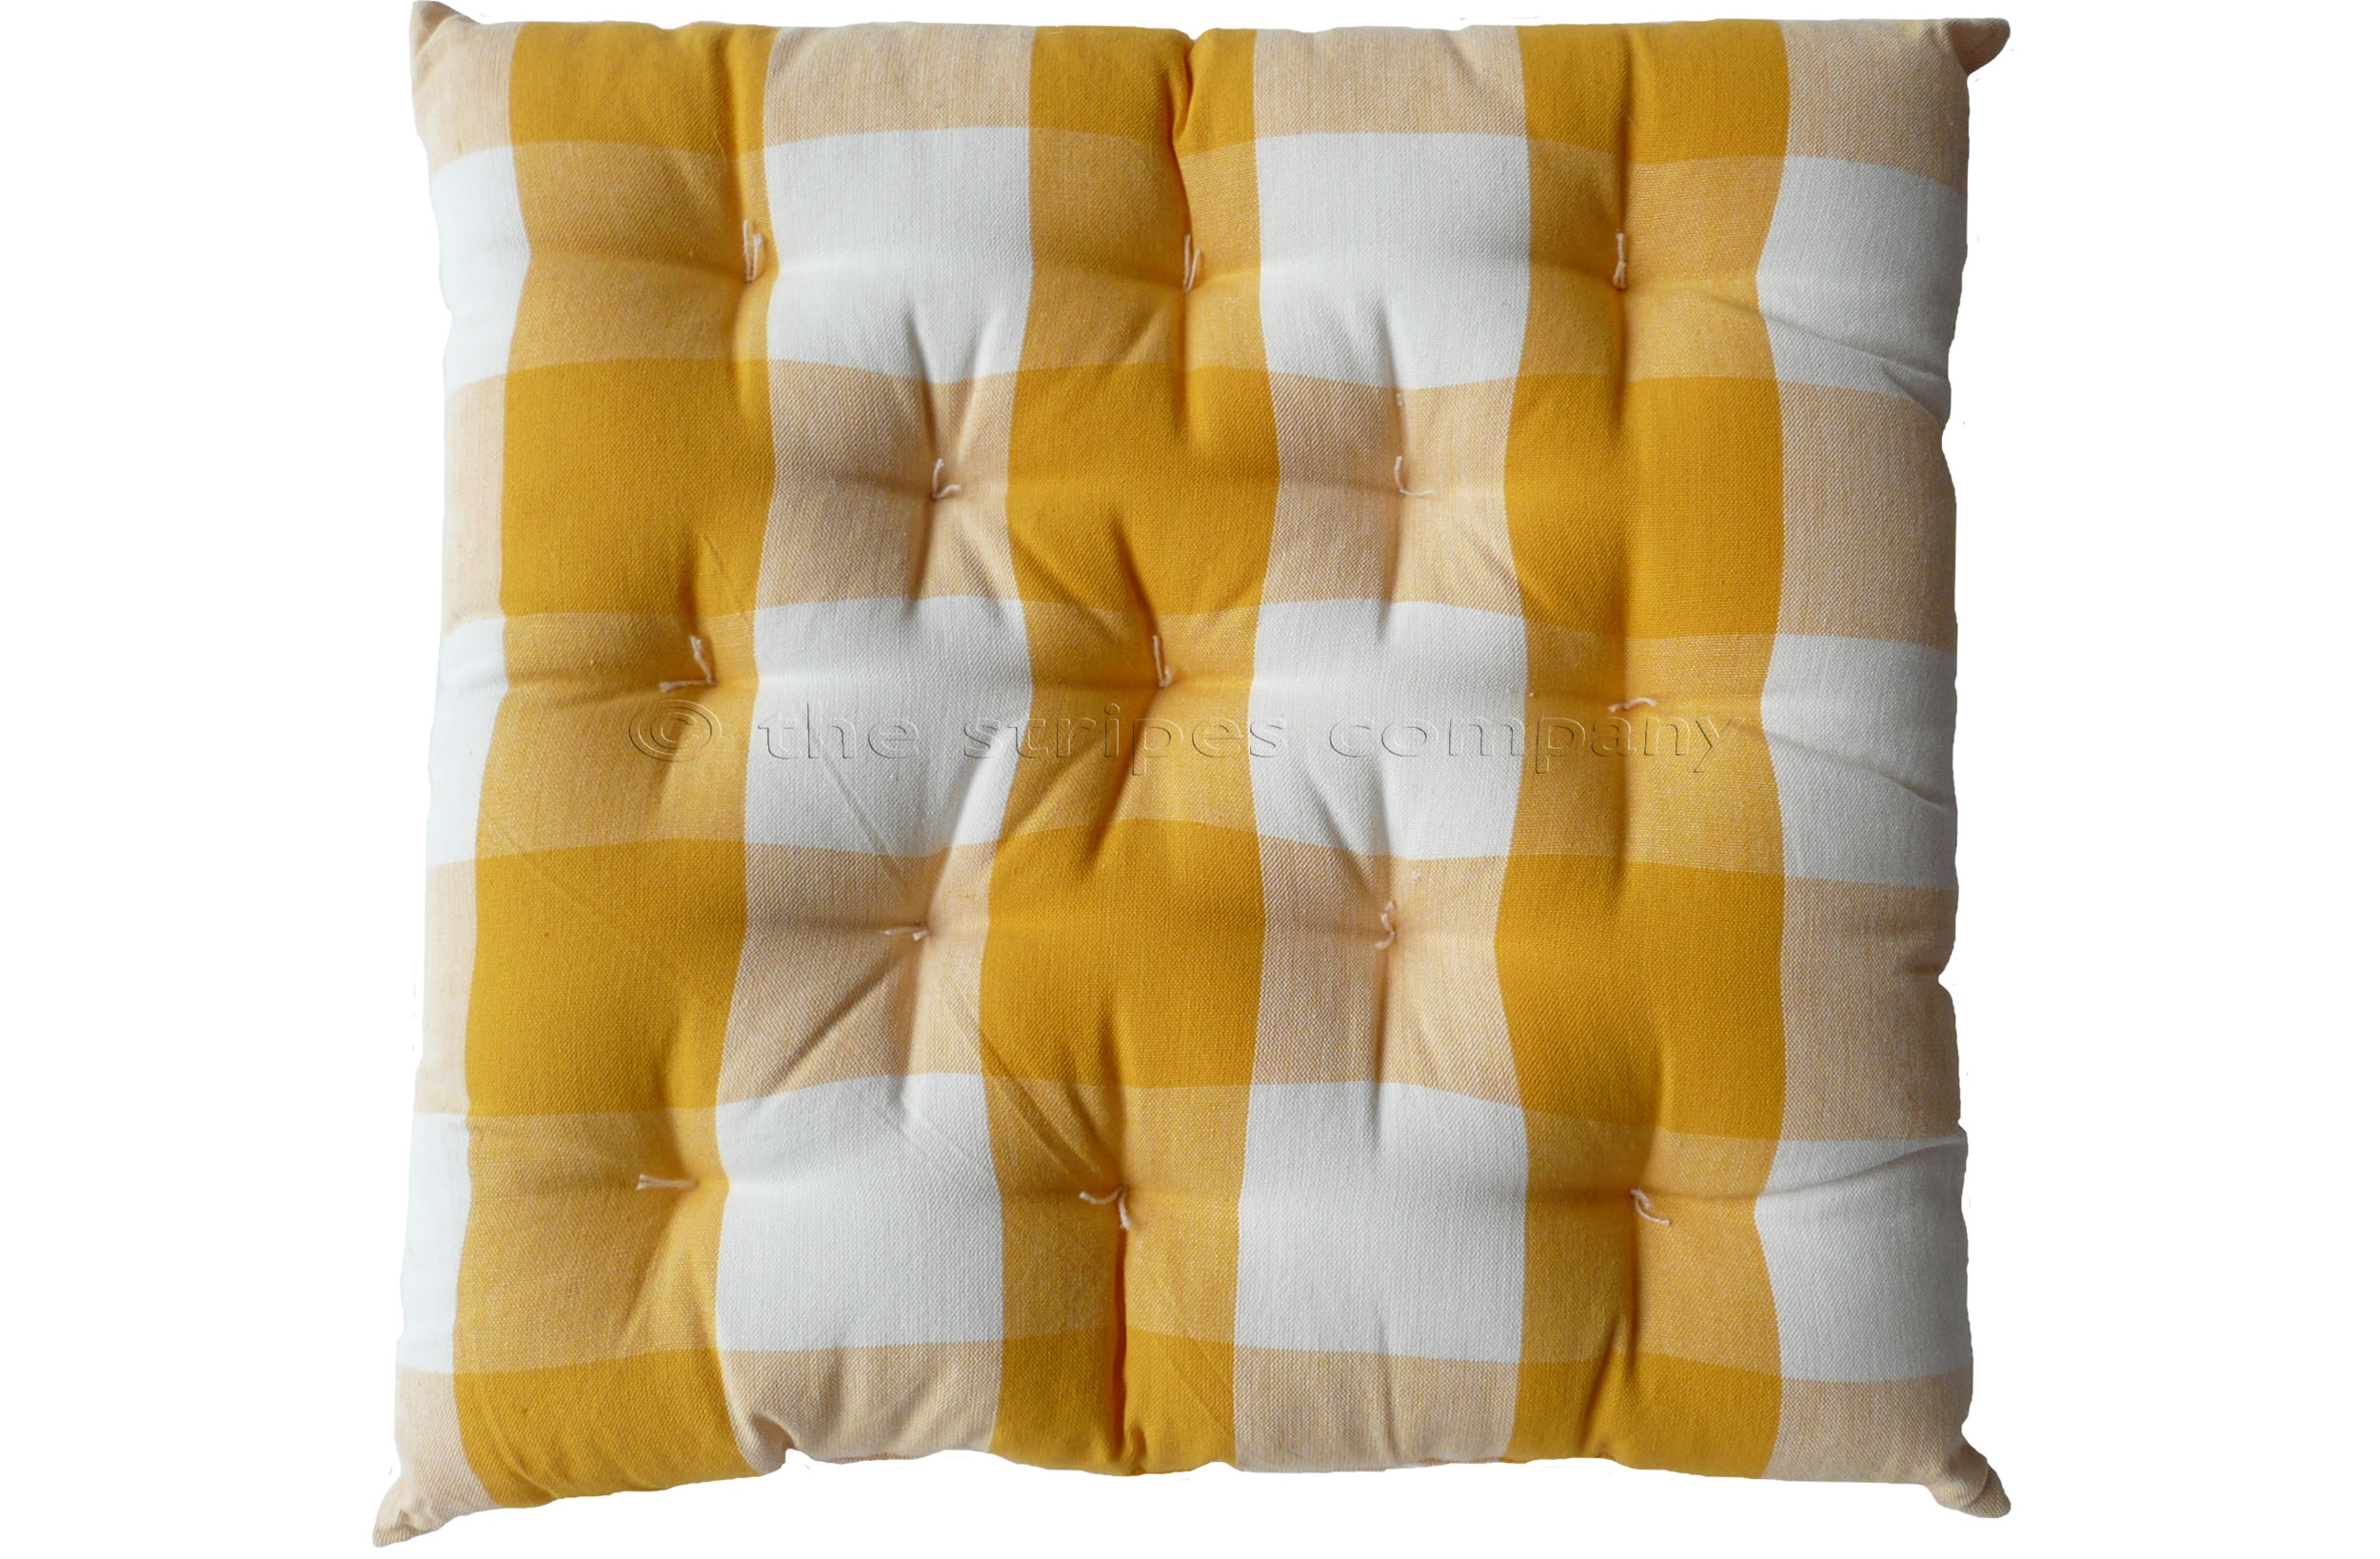 Yellow and White Gingham Seat Pads | Large Check Chair Cushions | Vichy Check Seat Pads